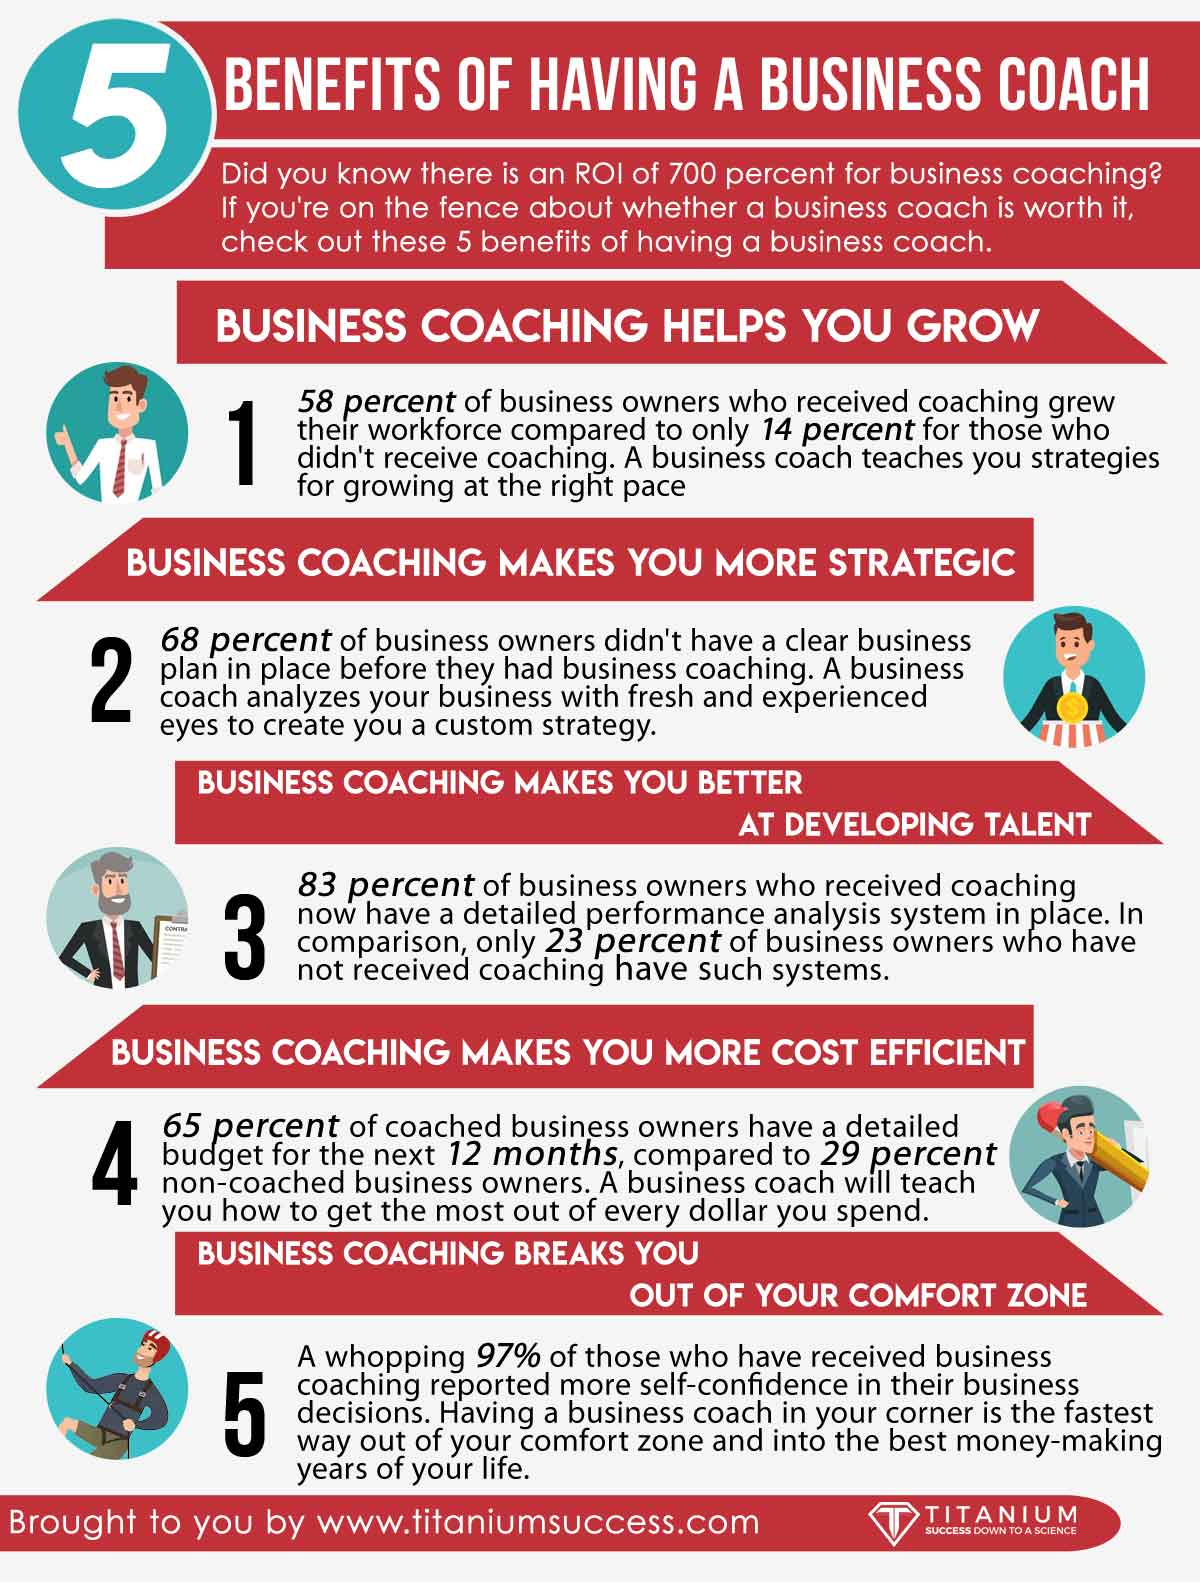 5 Benefits of Having a Business Coach Infographic